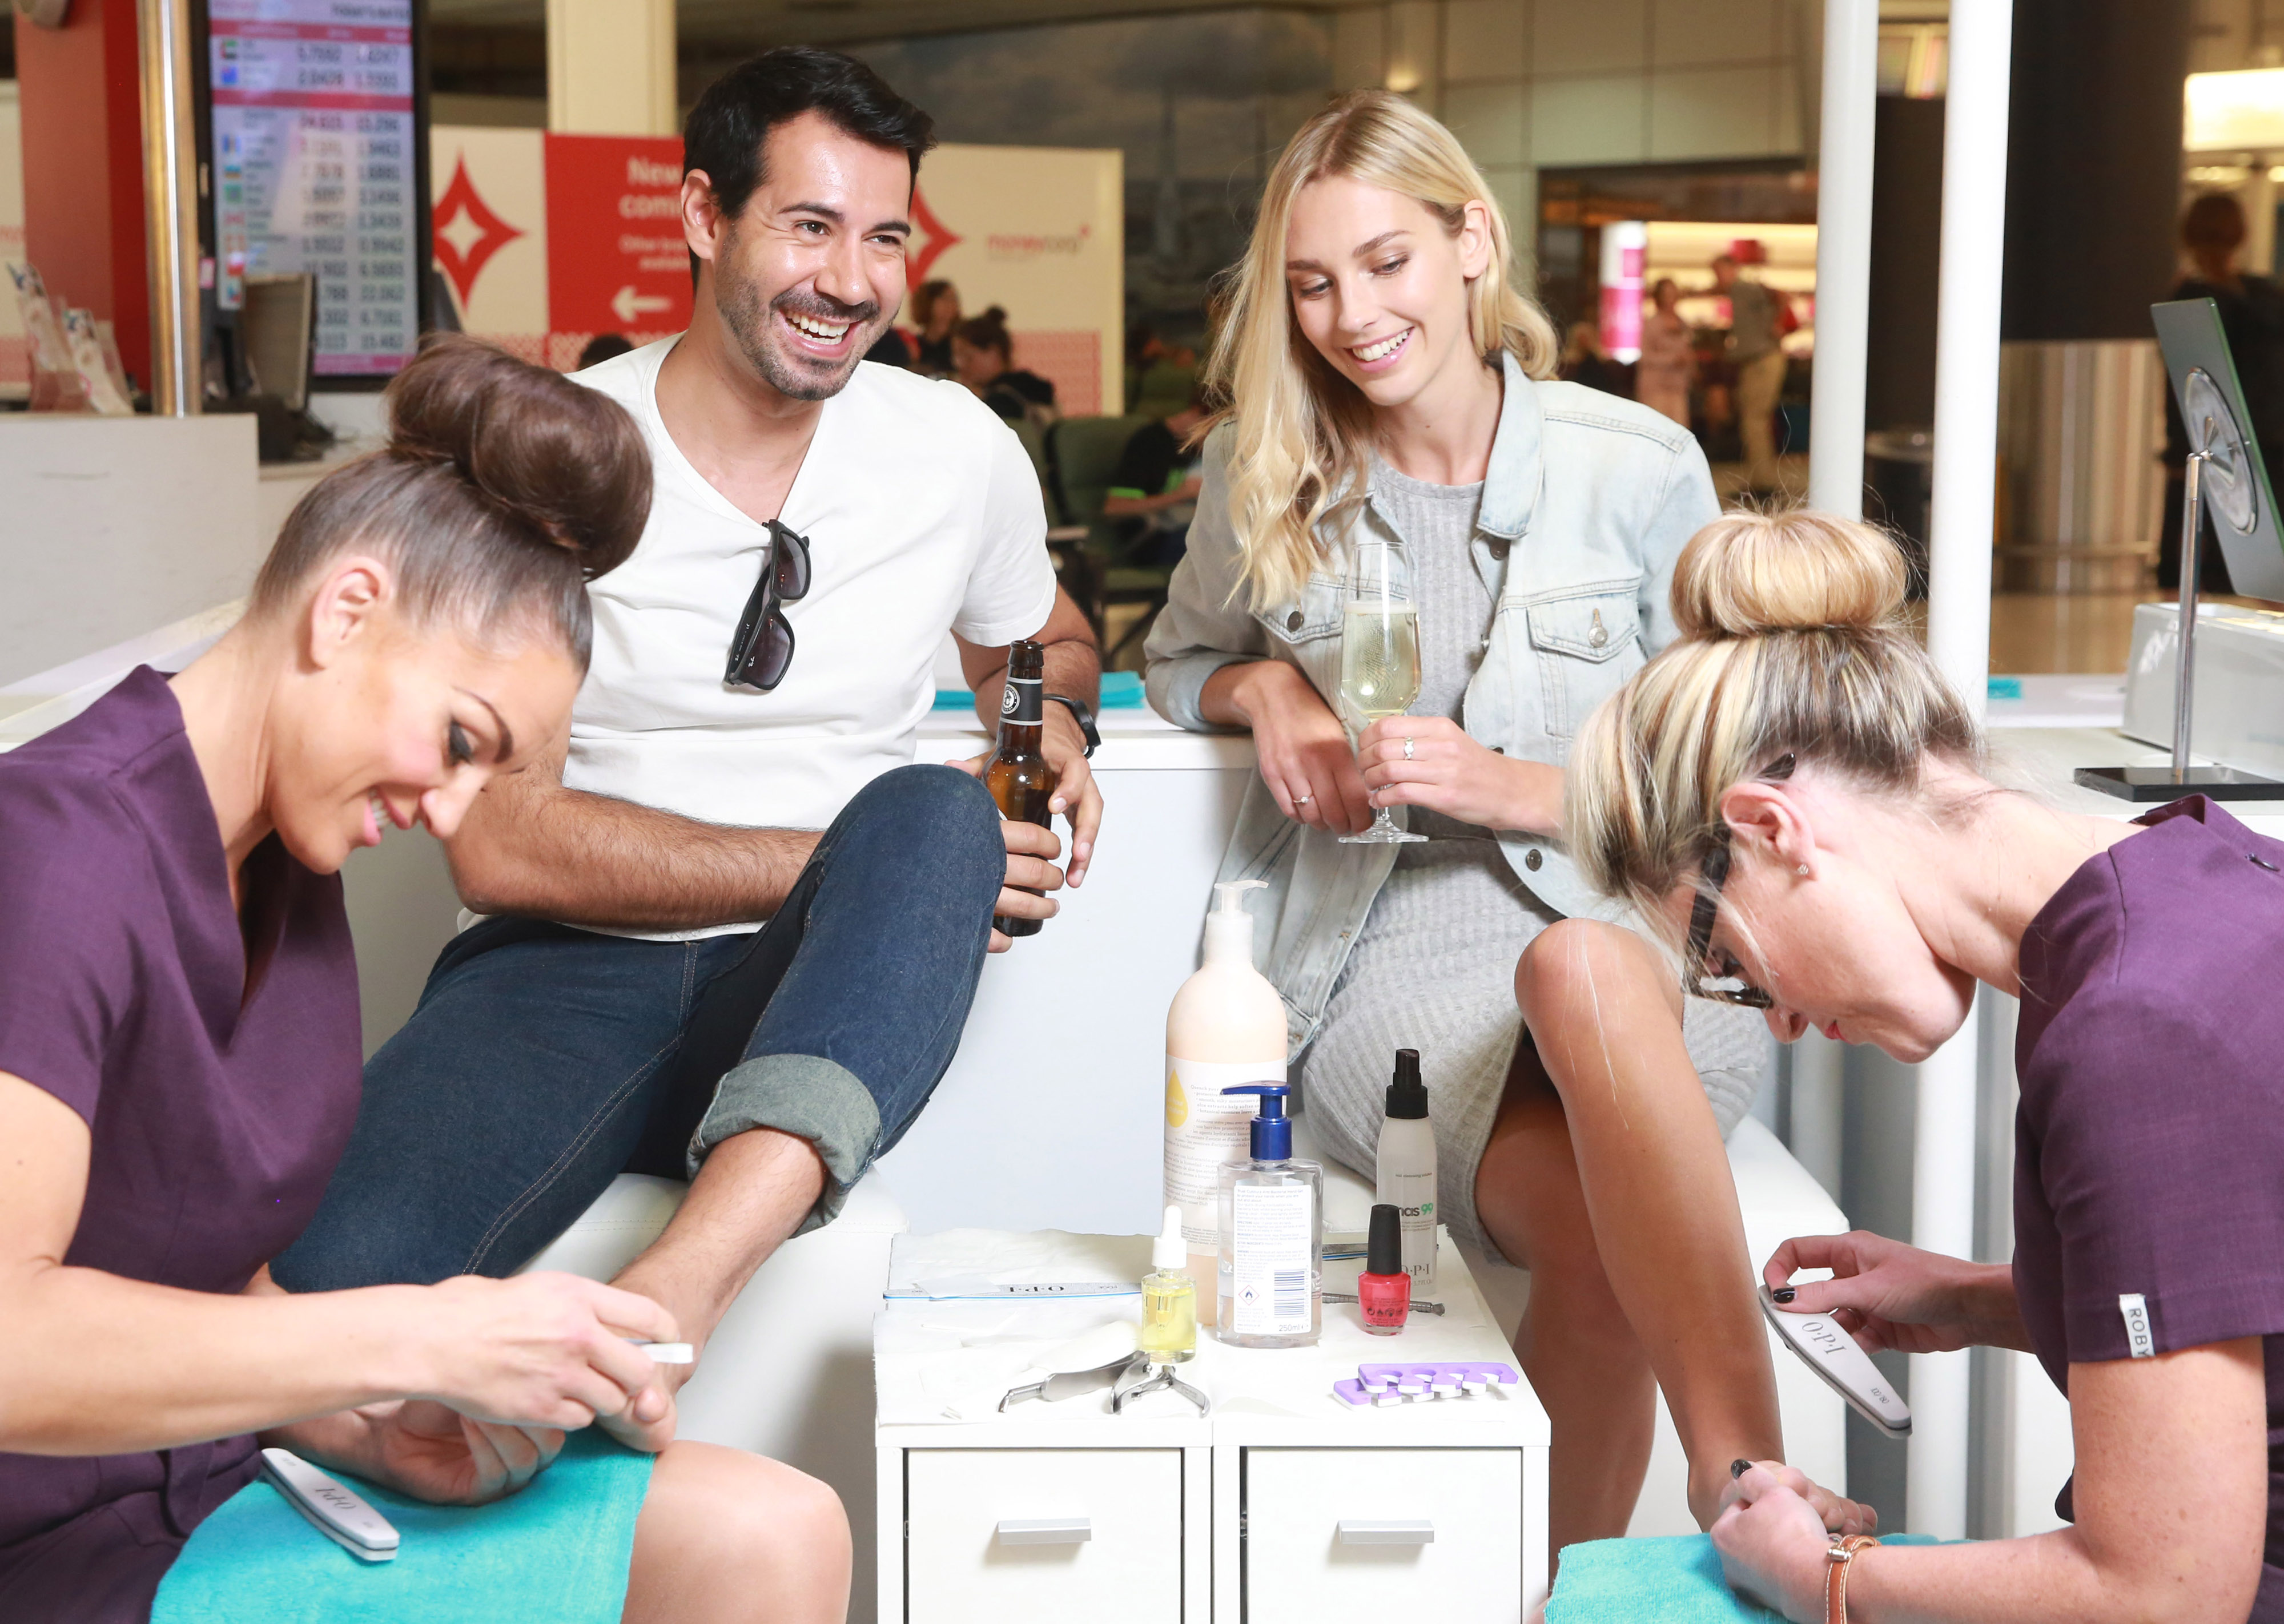 Gatwick Airport are offering free pedicures because they're sick of your manky feet